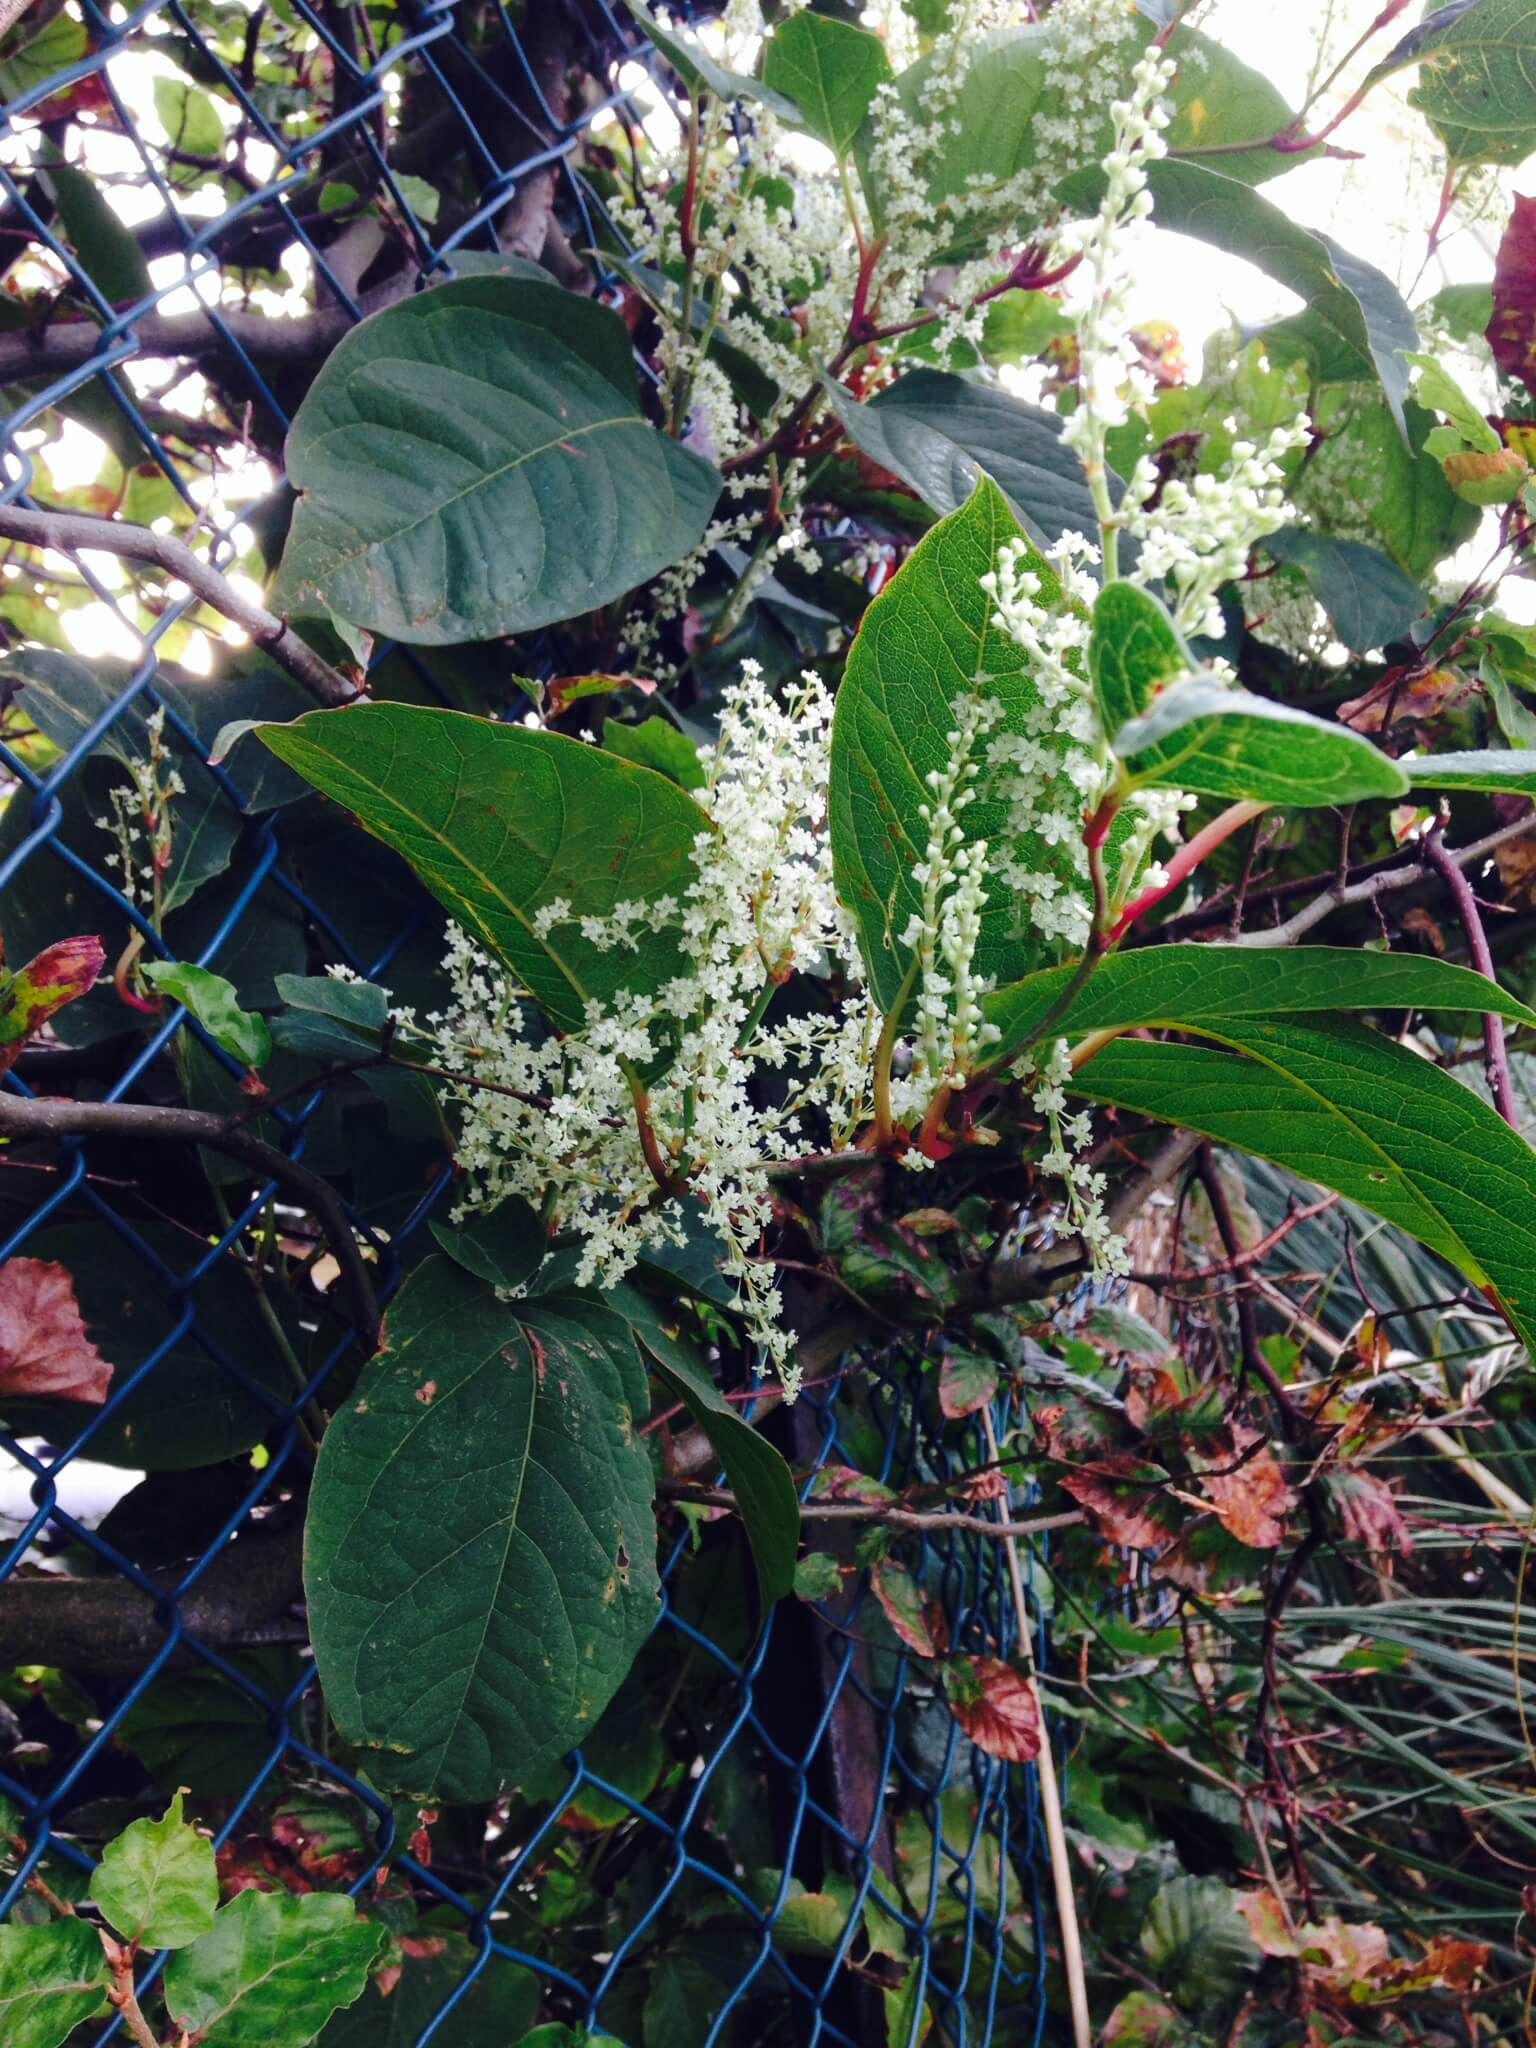 Eradicating Japanese Knotweed in Cheshire